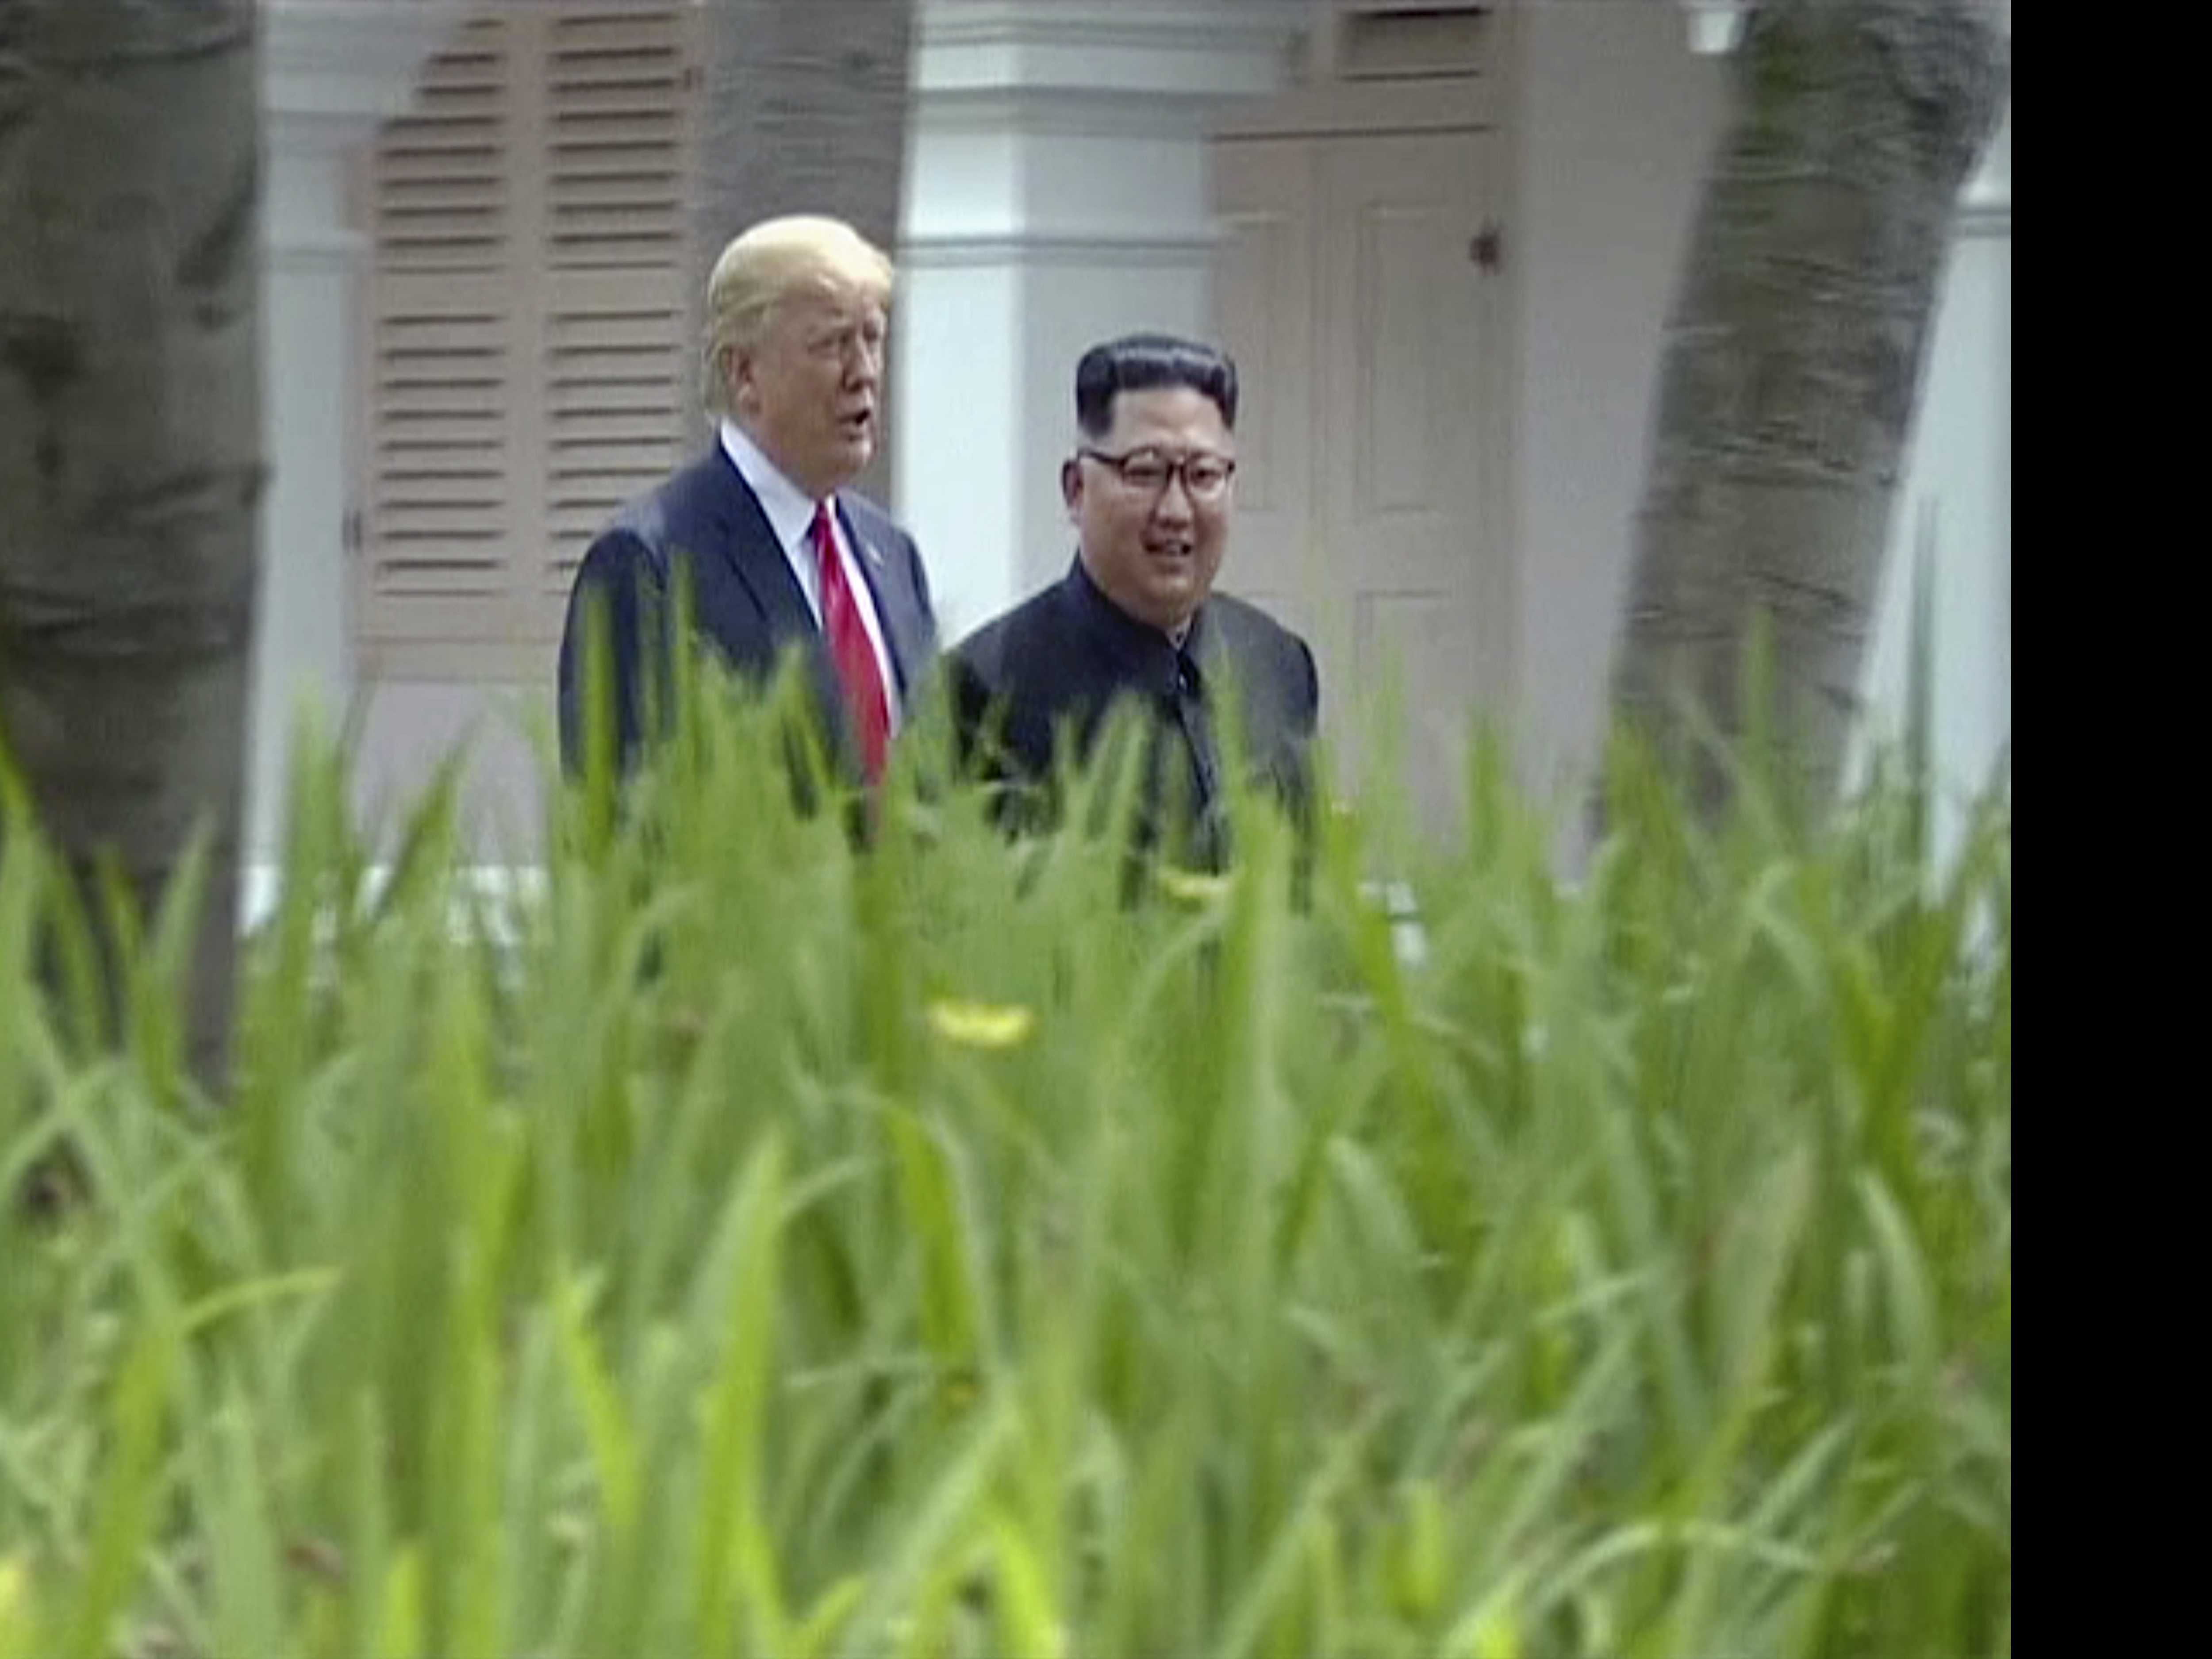 After Summit, North Korea Shows Trump in New Light